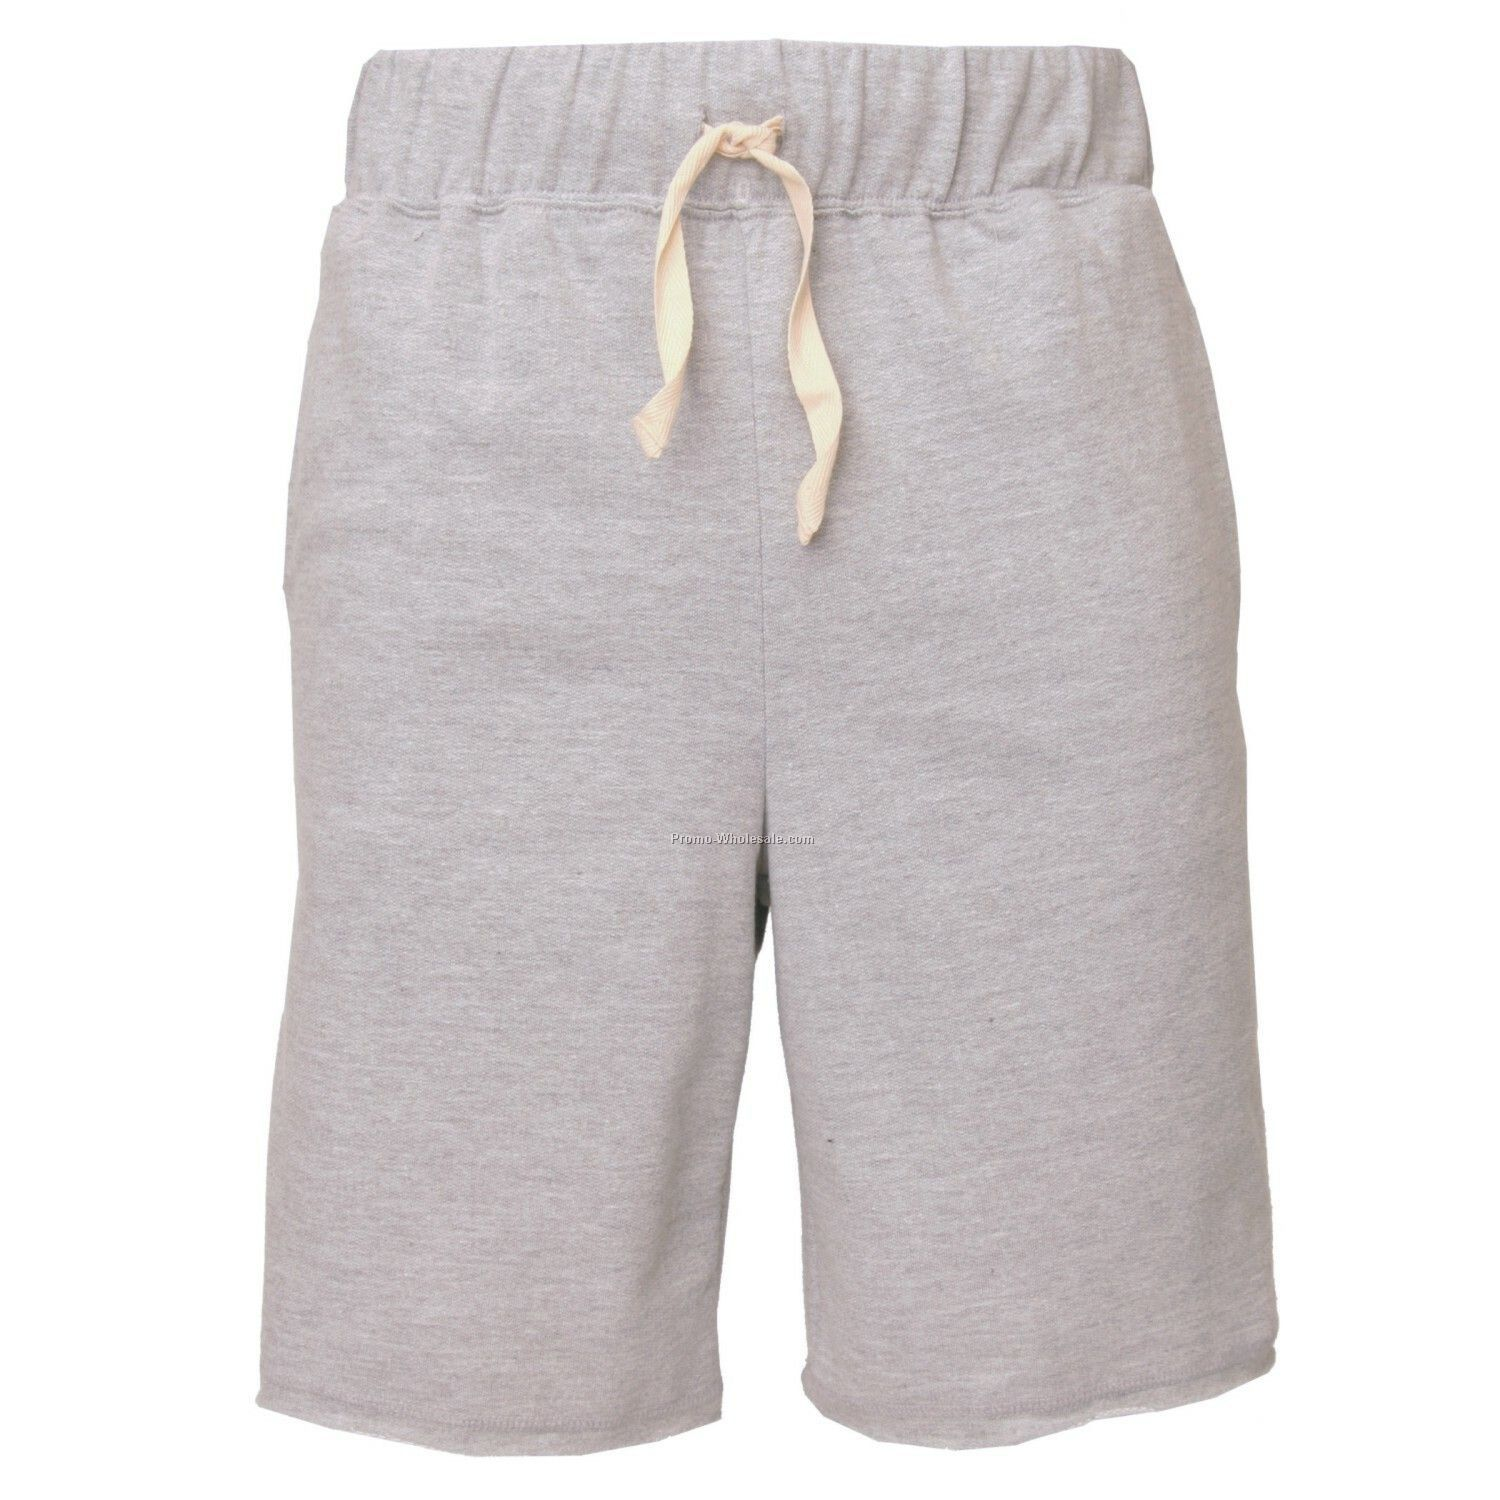 Youths' Heather Grey First Place Fleece Shorts With 2 Side Pockets (Ys-yl)